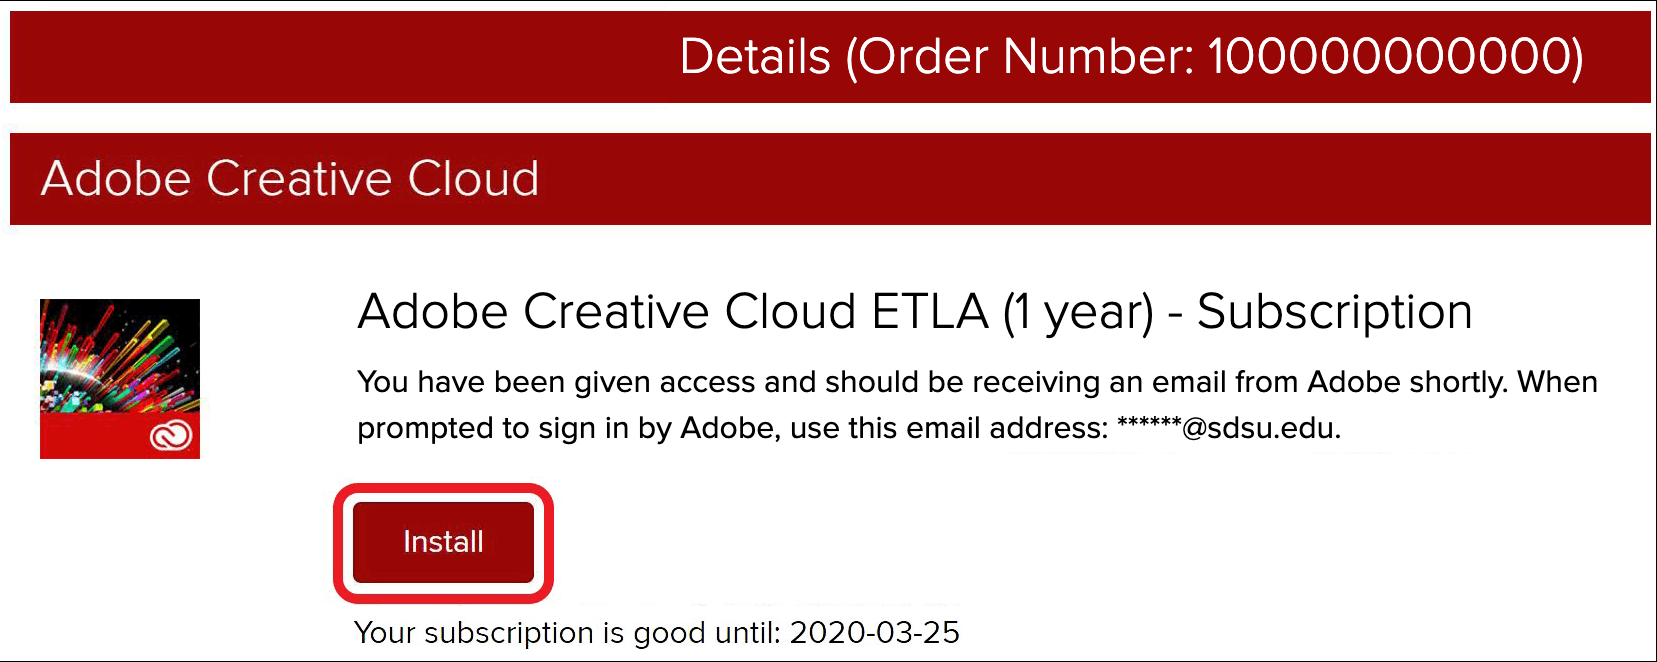 Sign into Adobe Creative Cloud applications with your SDSUid